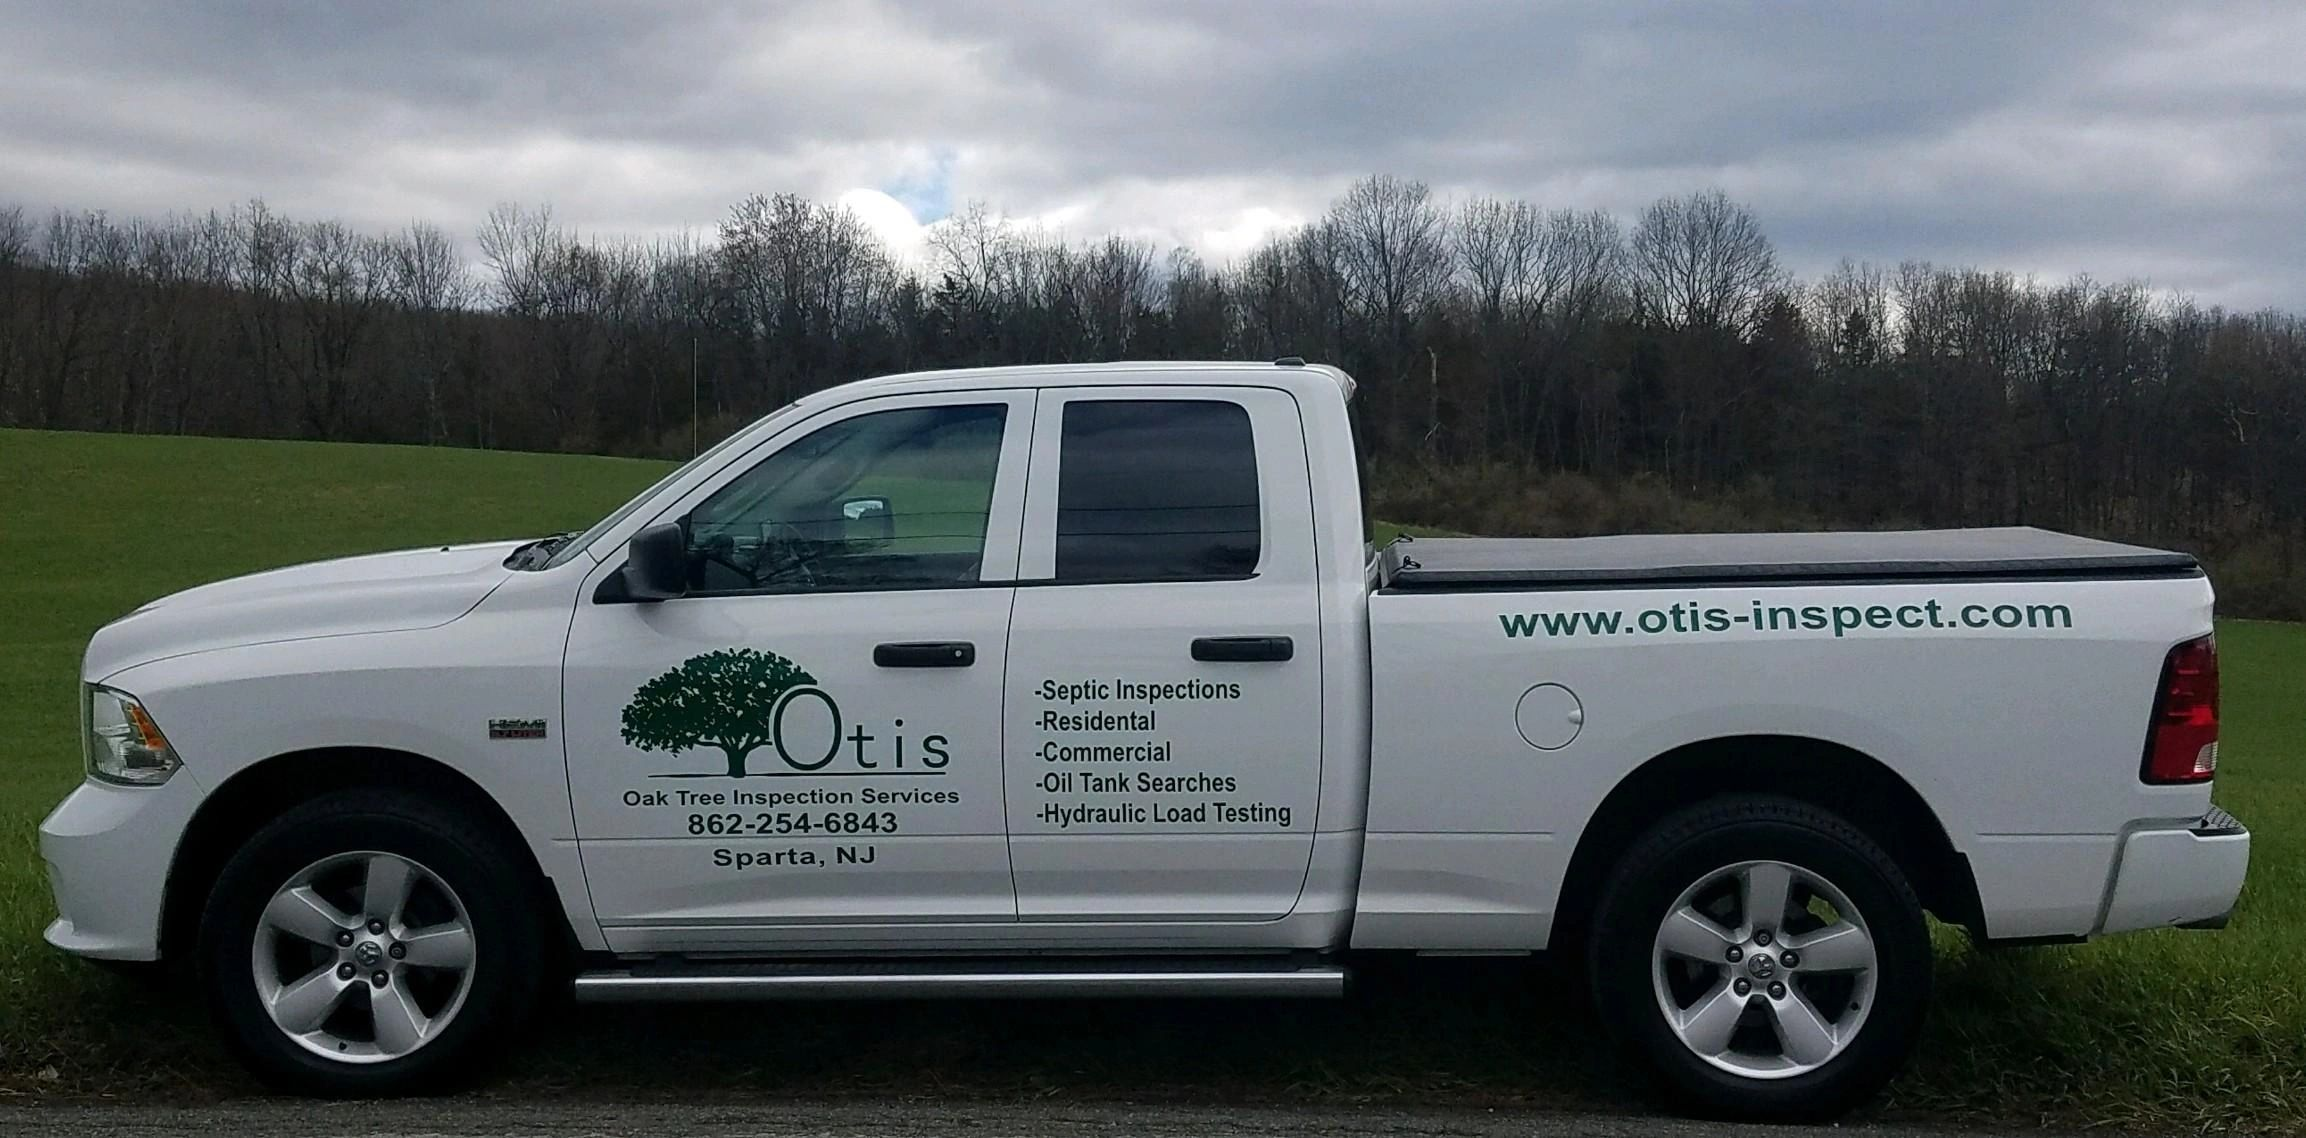 Septic Inspection | Oak Tree Inspection Services